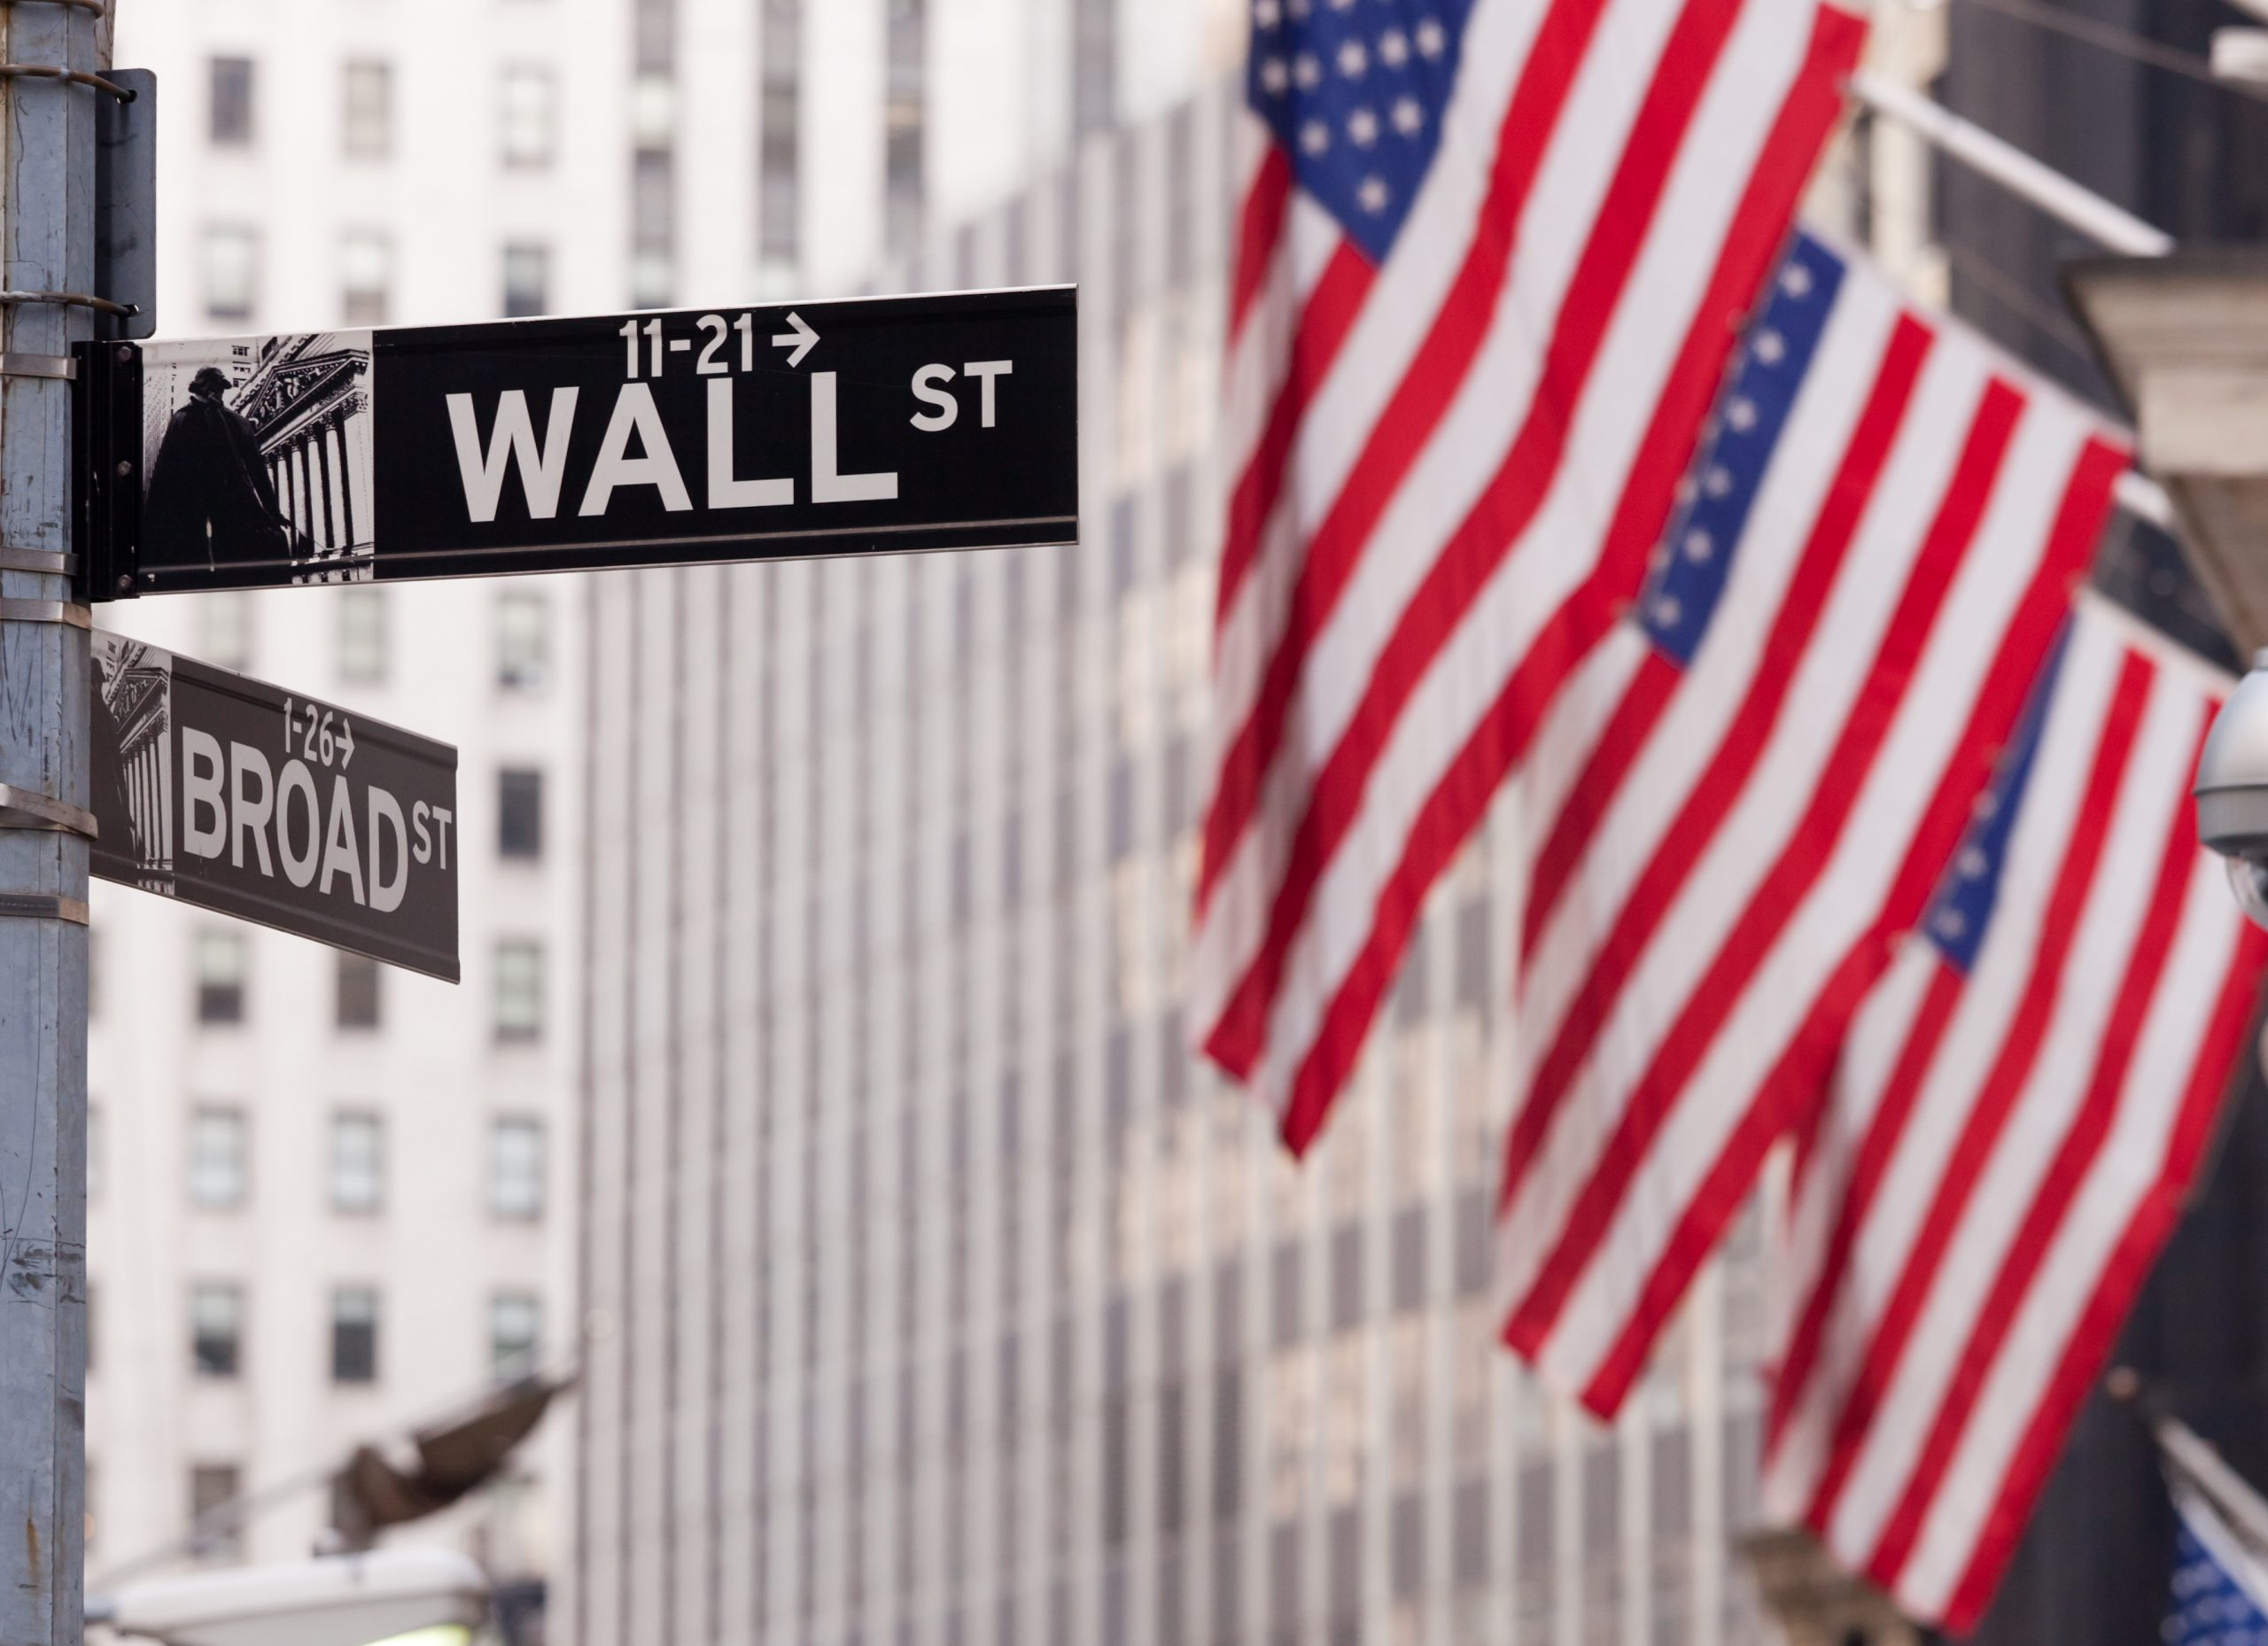 Bitcoin Wall Street, Grayscale and Bitcoin Campaign